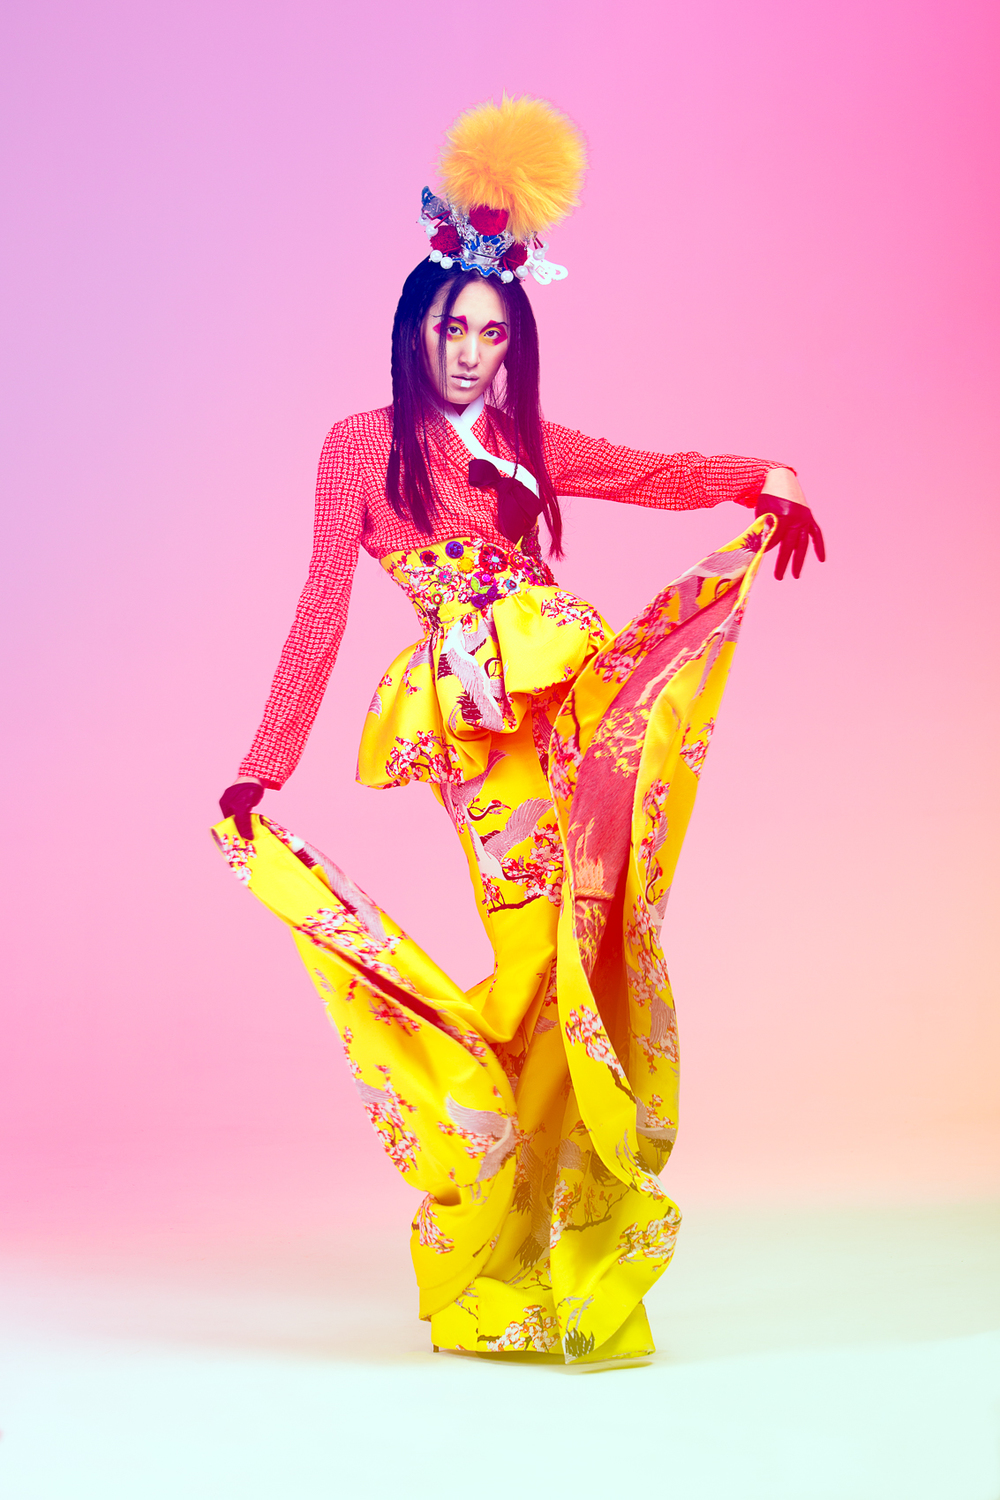 MAXIMALISM-Futuristic vintage with poesia by Chris Chang-thatsitmag1.jpg